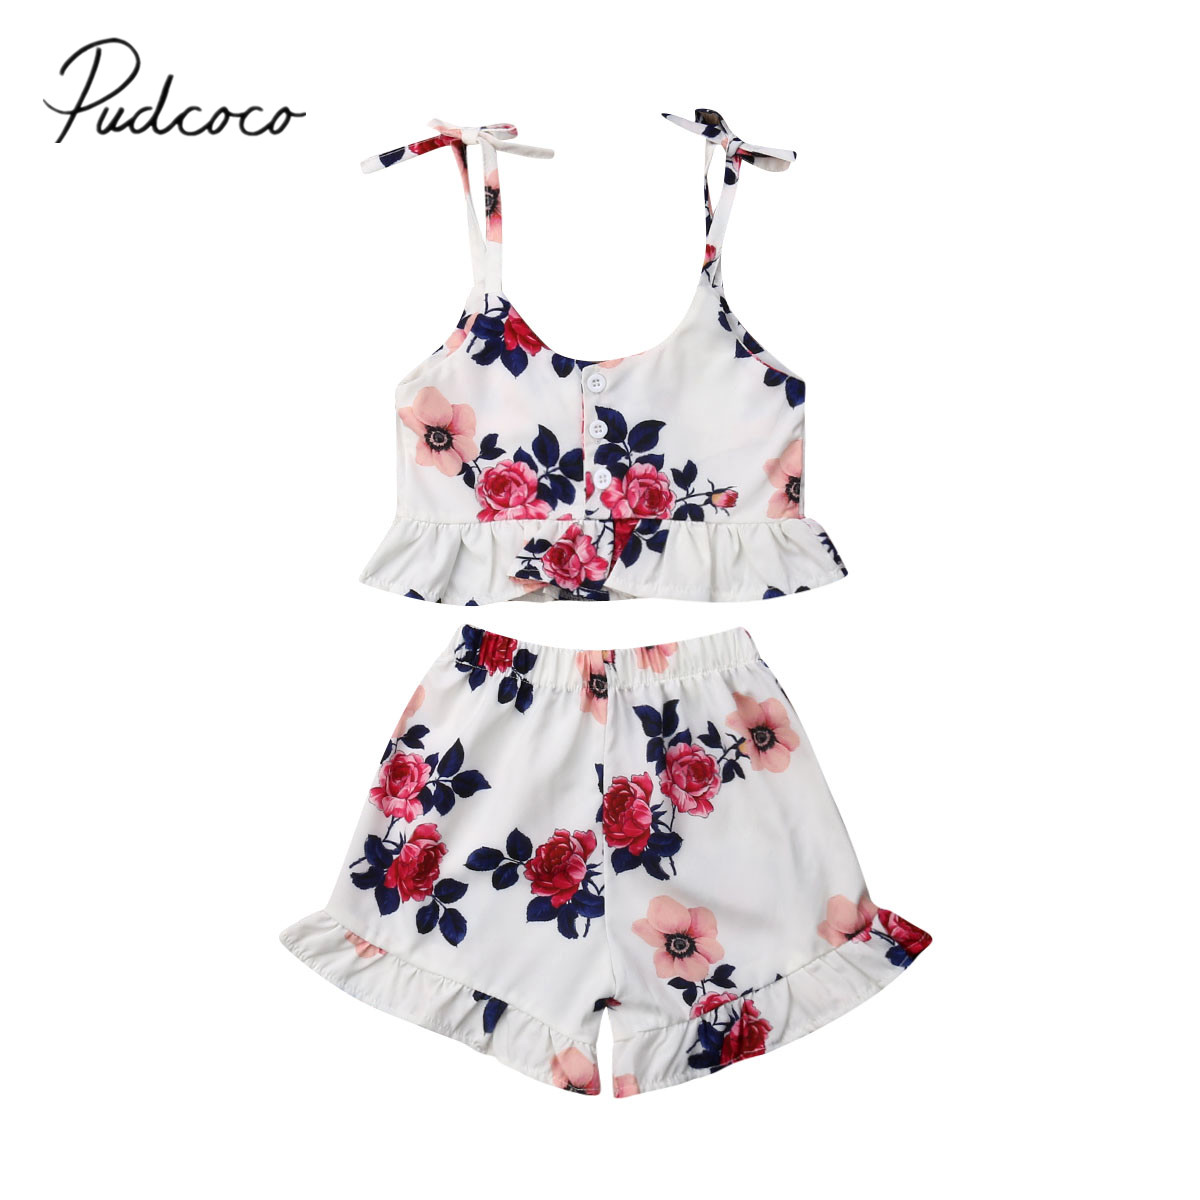 af8d398c812ea 2019 Baby Summer Clothing 0-3Y Kid Baby Girl Clothes Sets Sleeveless  Ruffles Crop Tops T-shirt Tops+ Floral Shorts Pants Outfits ~ Best Seller  July 2019